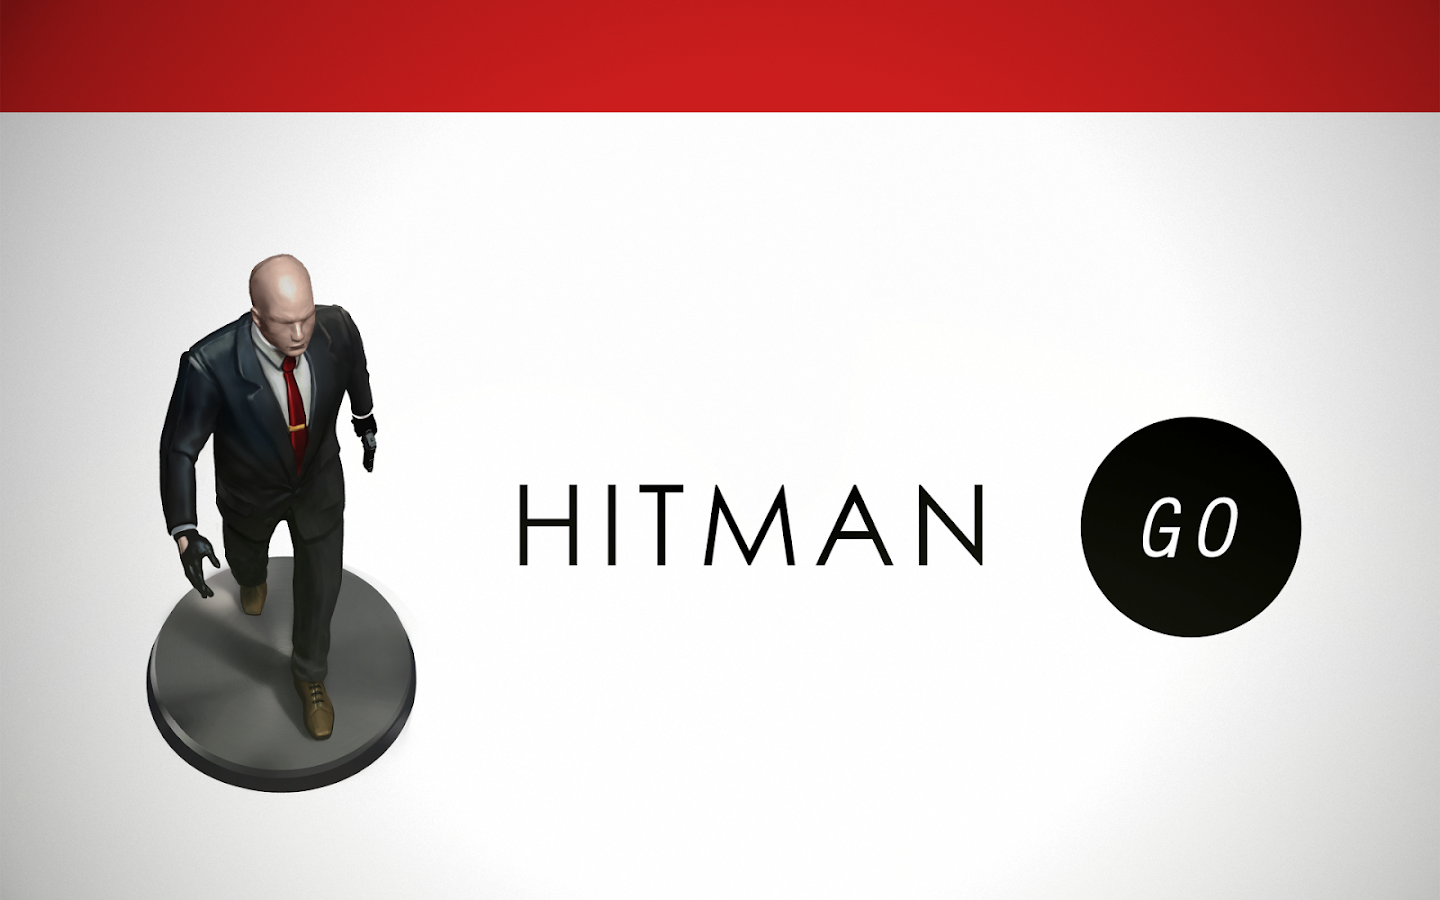 Hitman GO Screenshot 10